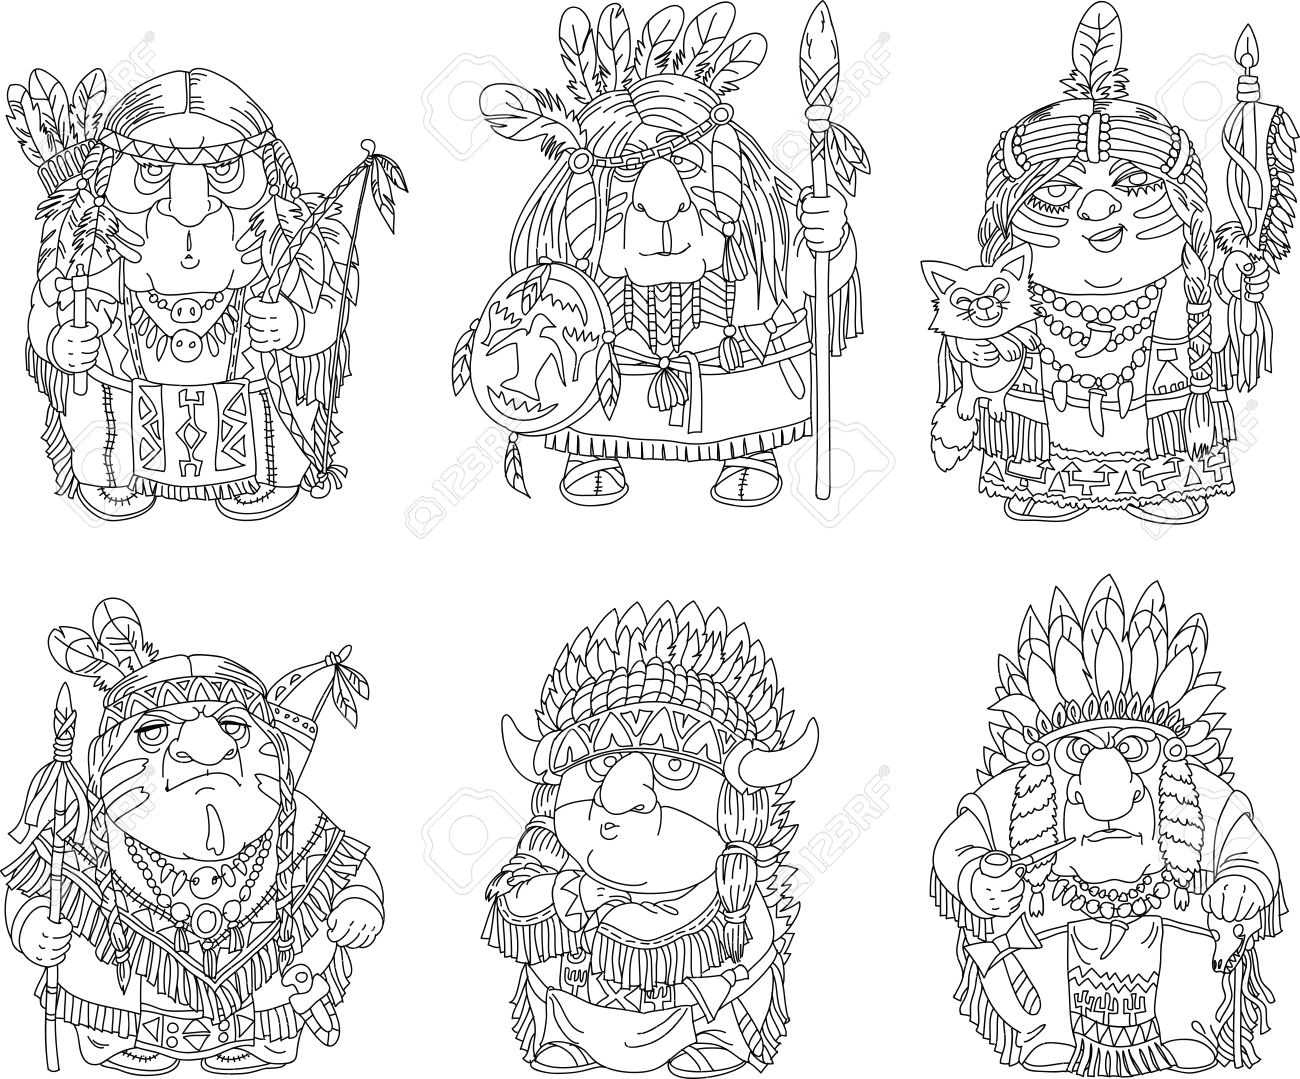 Dibujos Indios. Perfect. Affordable Indios Pintando Su Tipi Dibujo ...